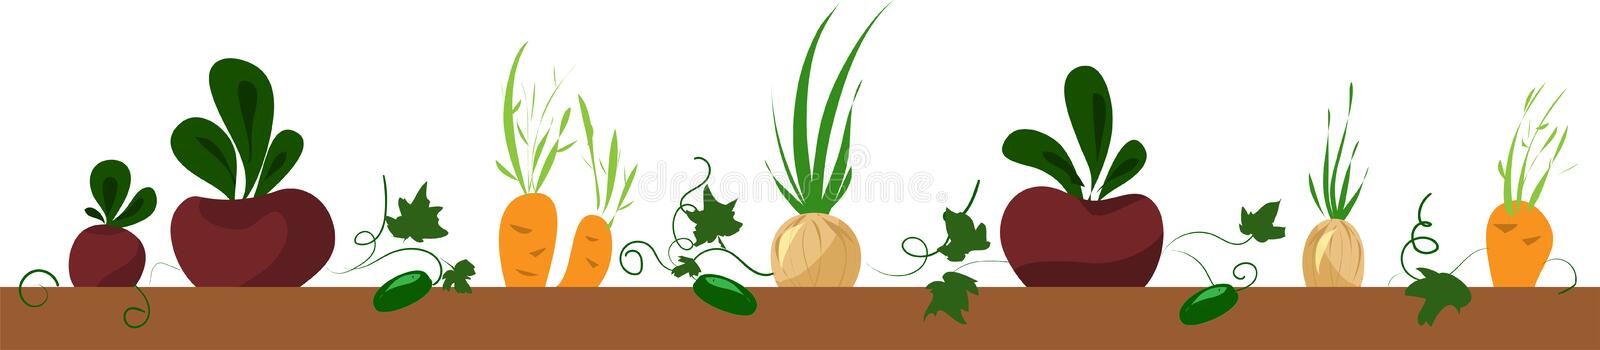 Vegetable bed, frame with beet, carrot, onion vector illustration